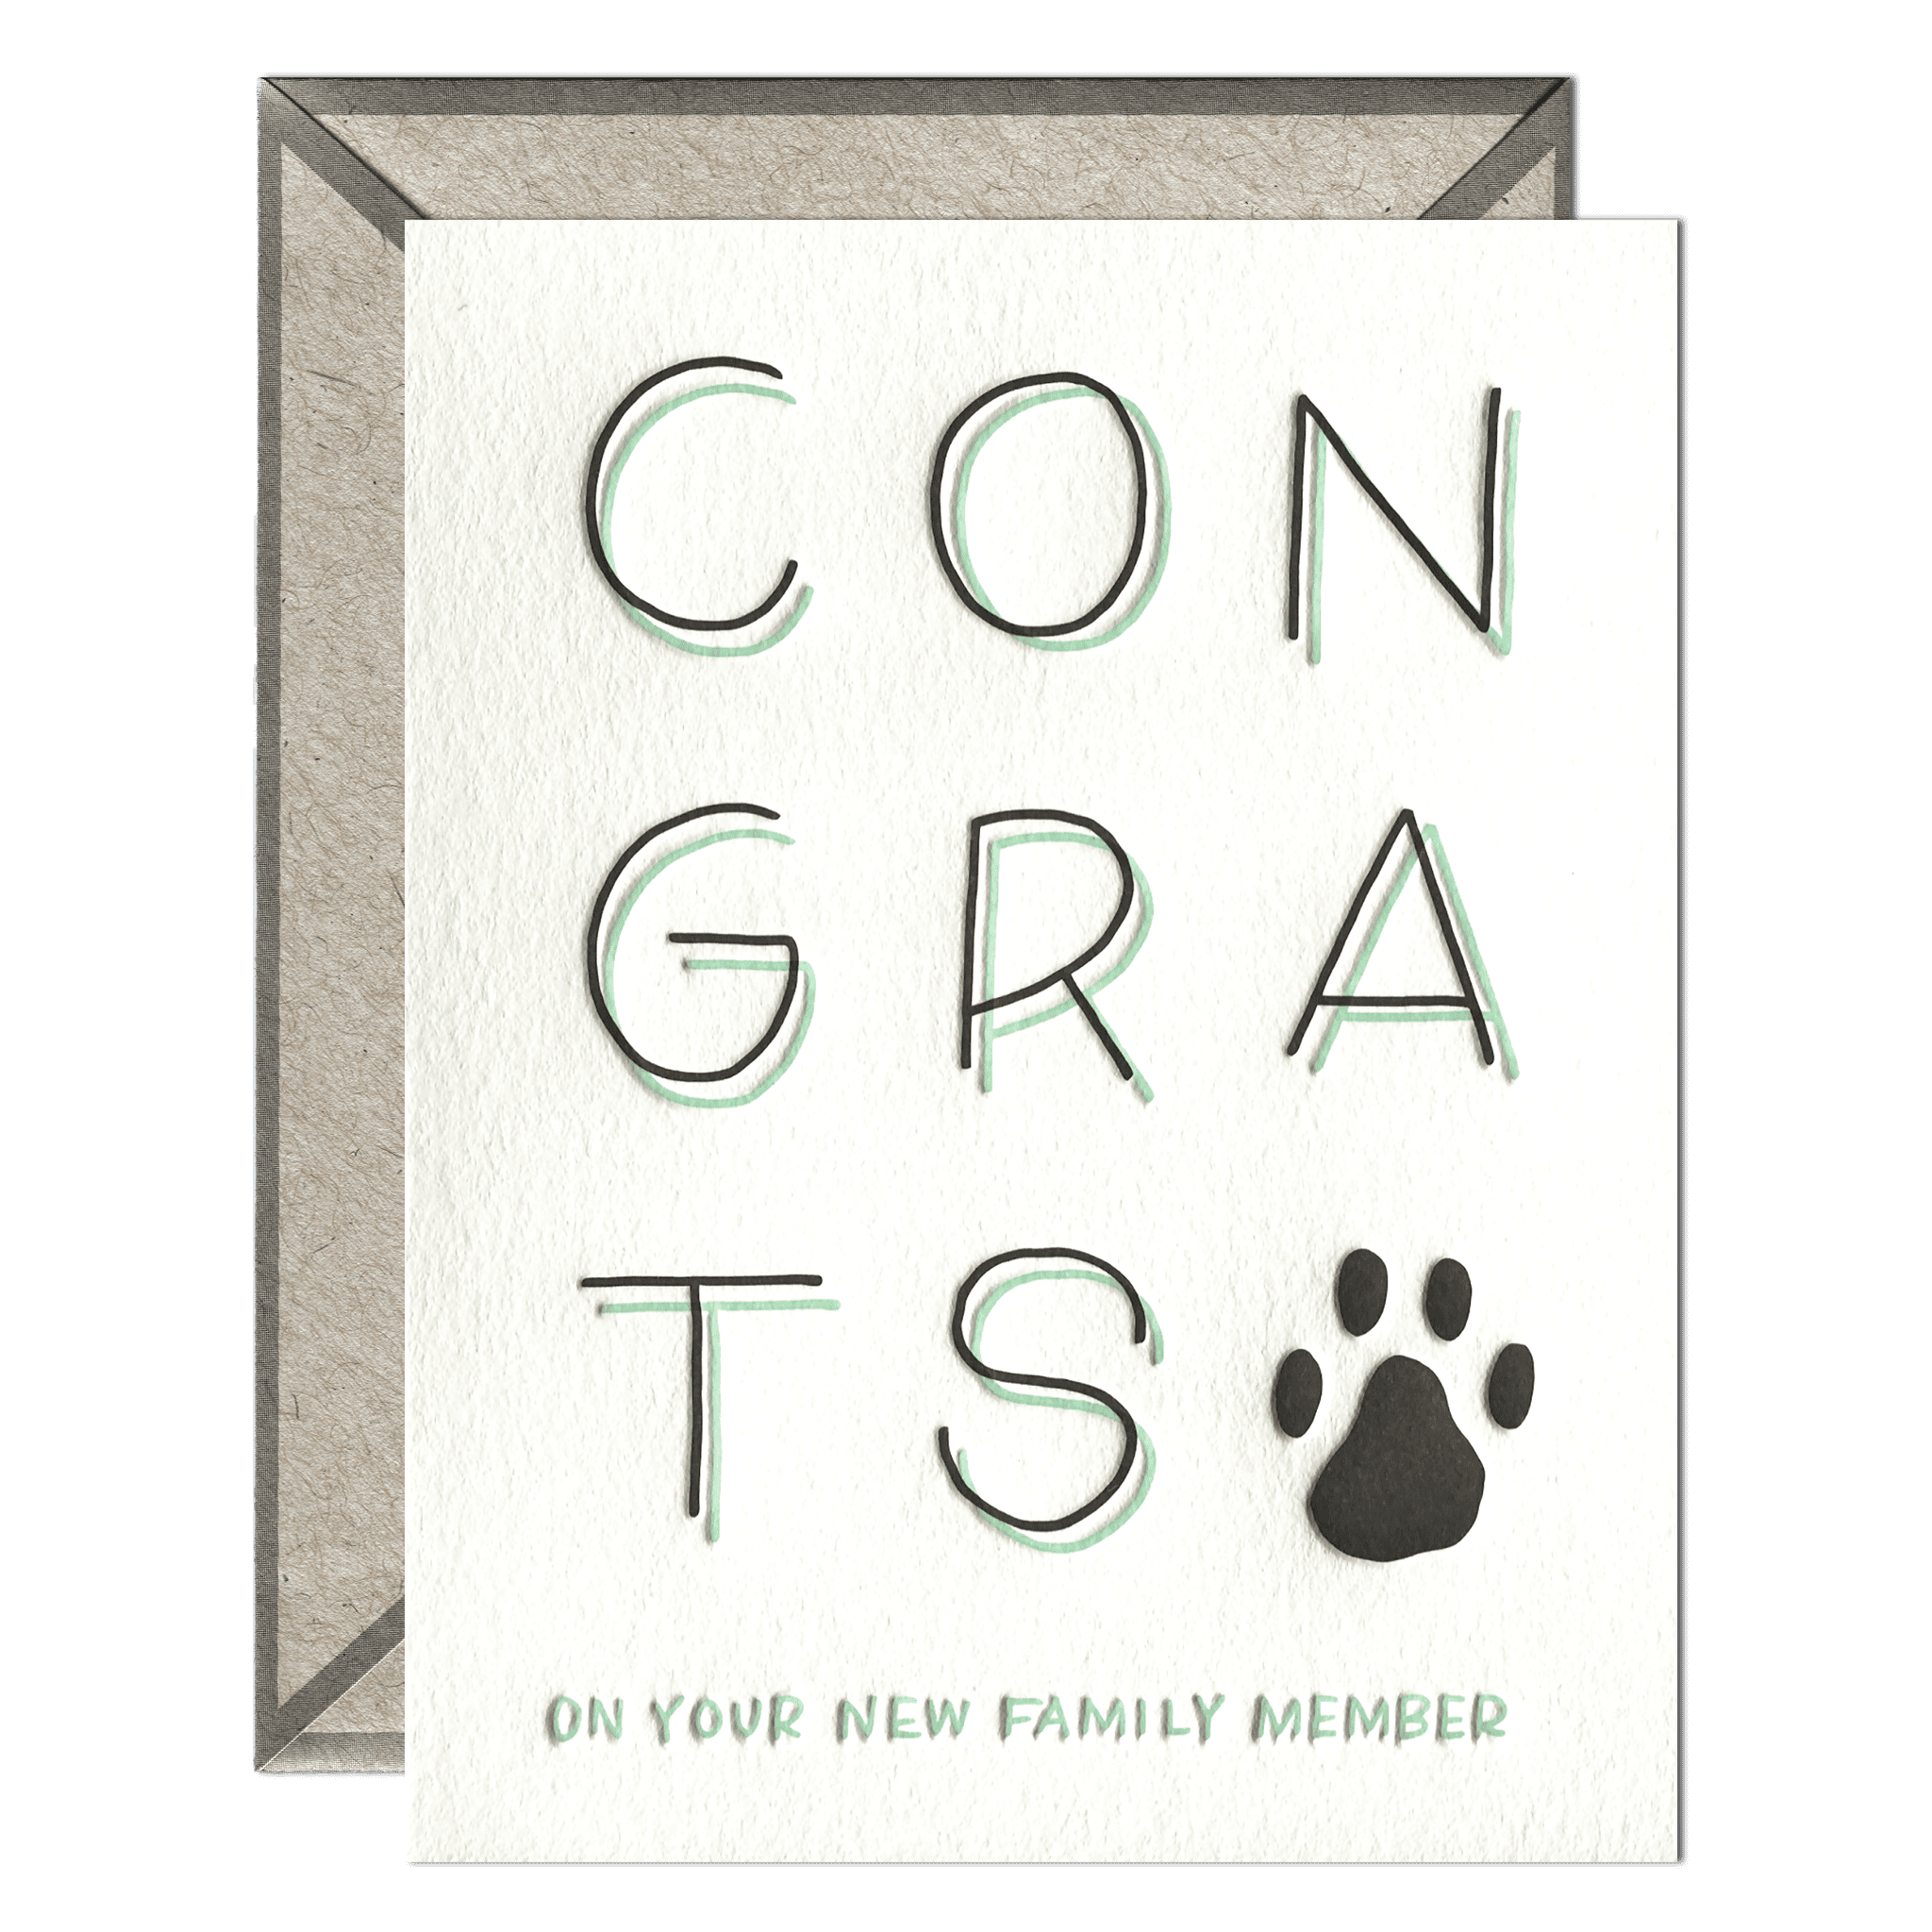 New Pet Congrats Letterpress Greeting Card with Envelope